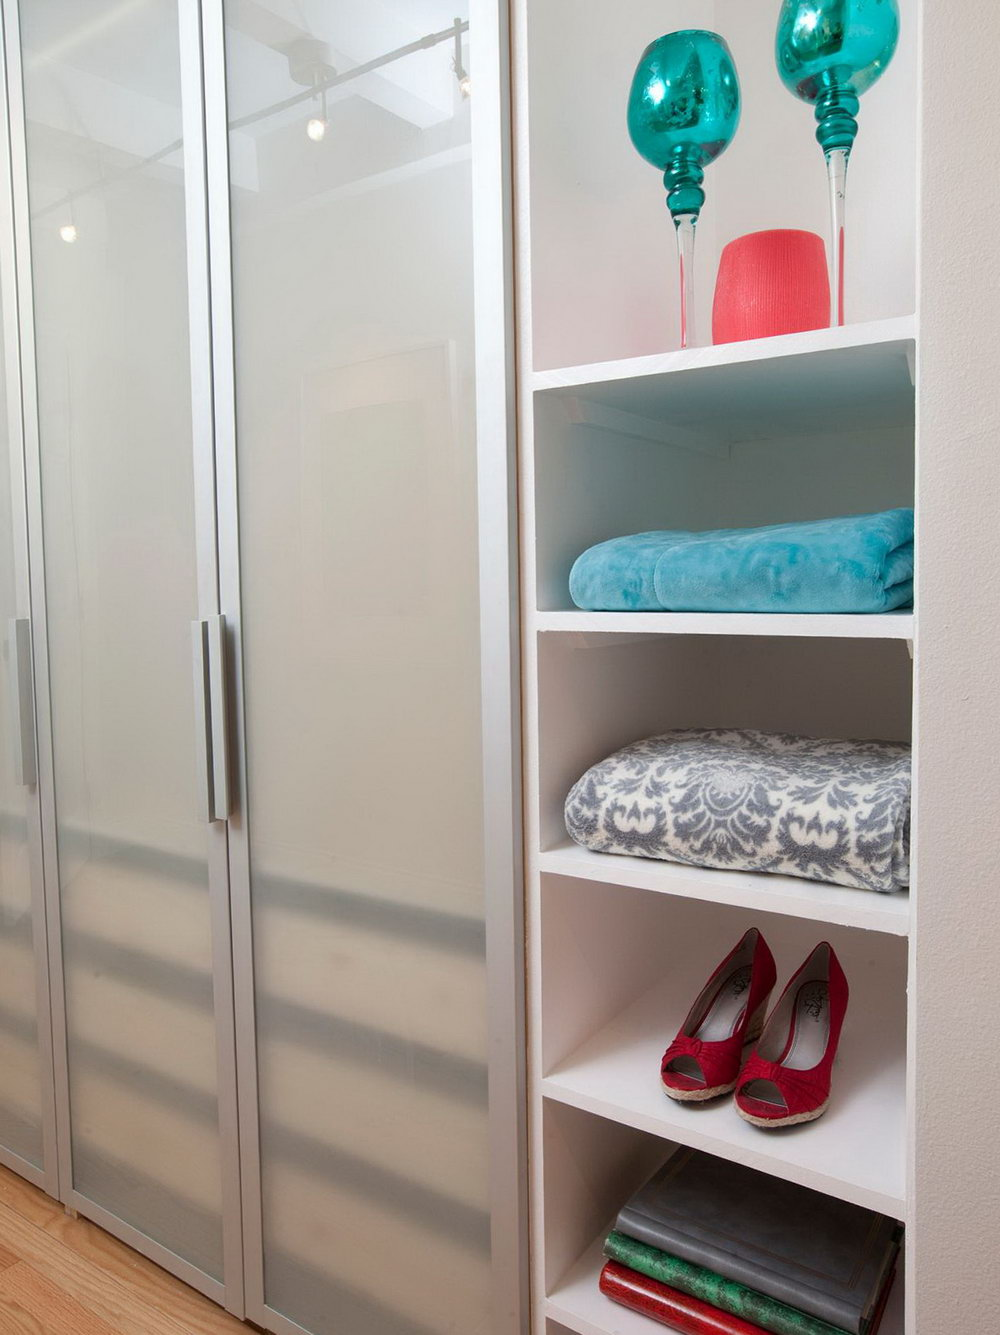 How To Make A Closet In A Room That Doesn't Have One